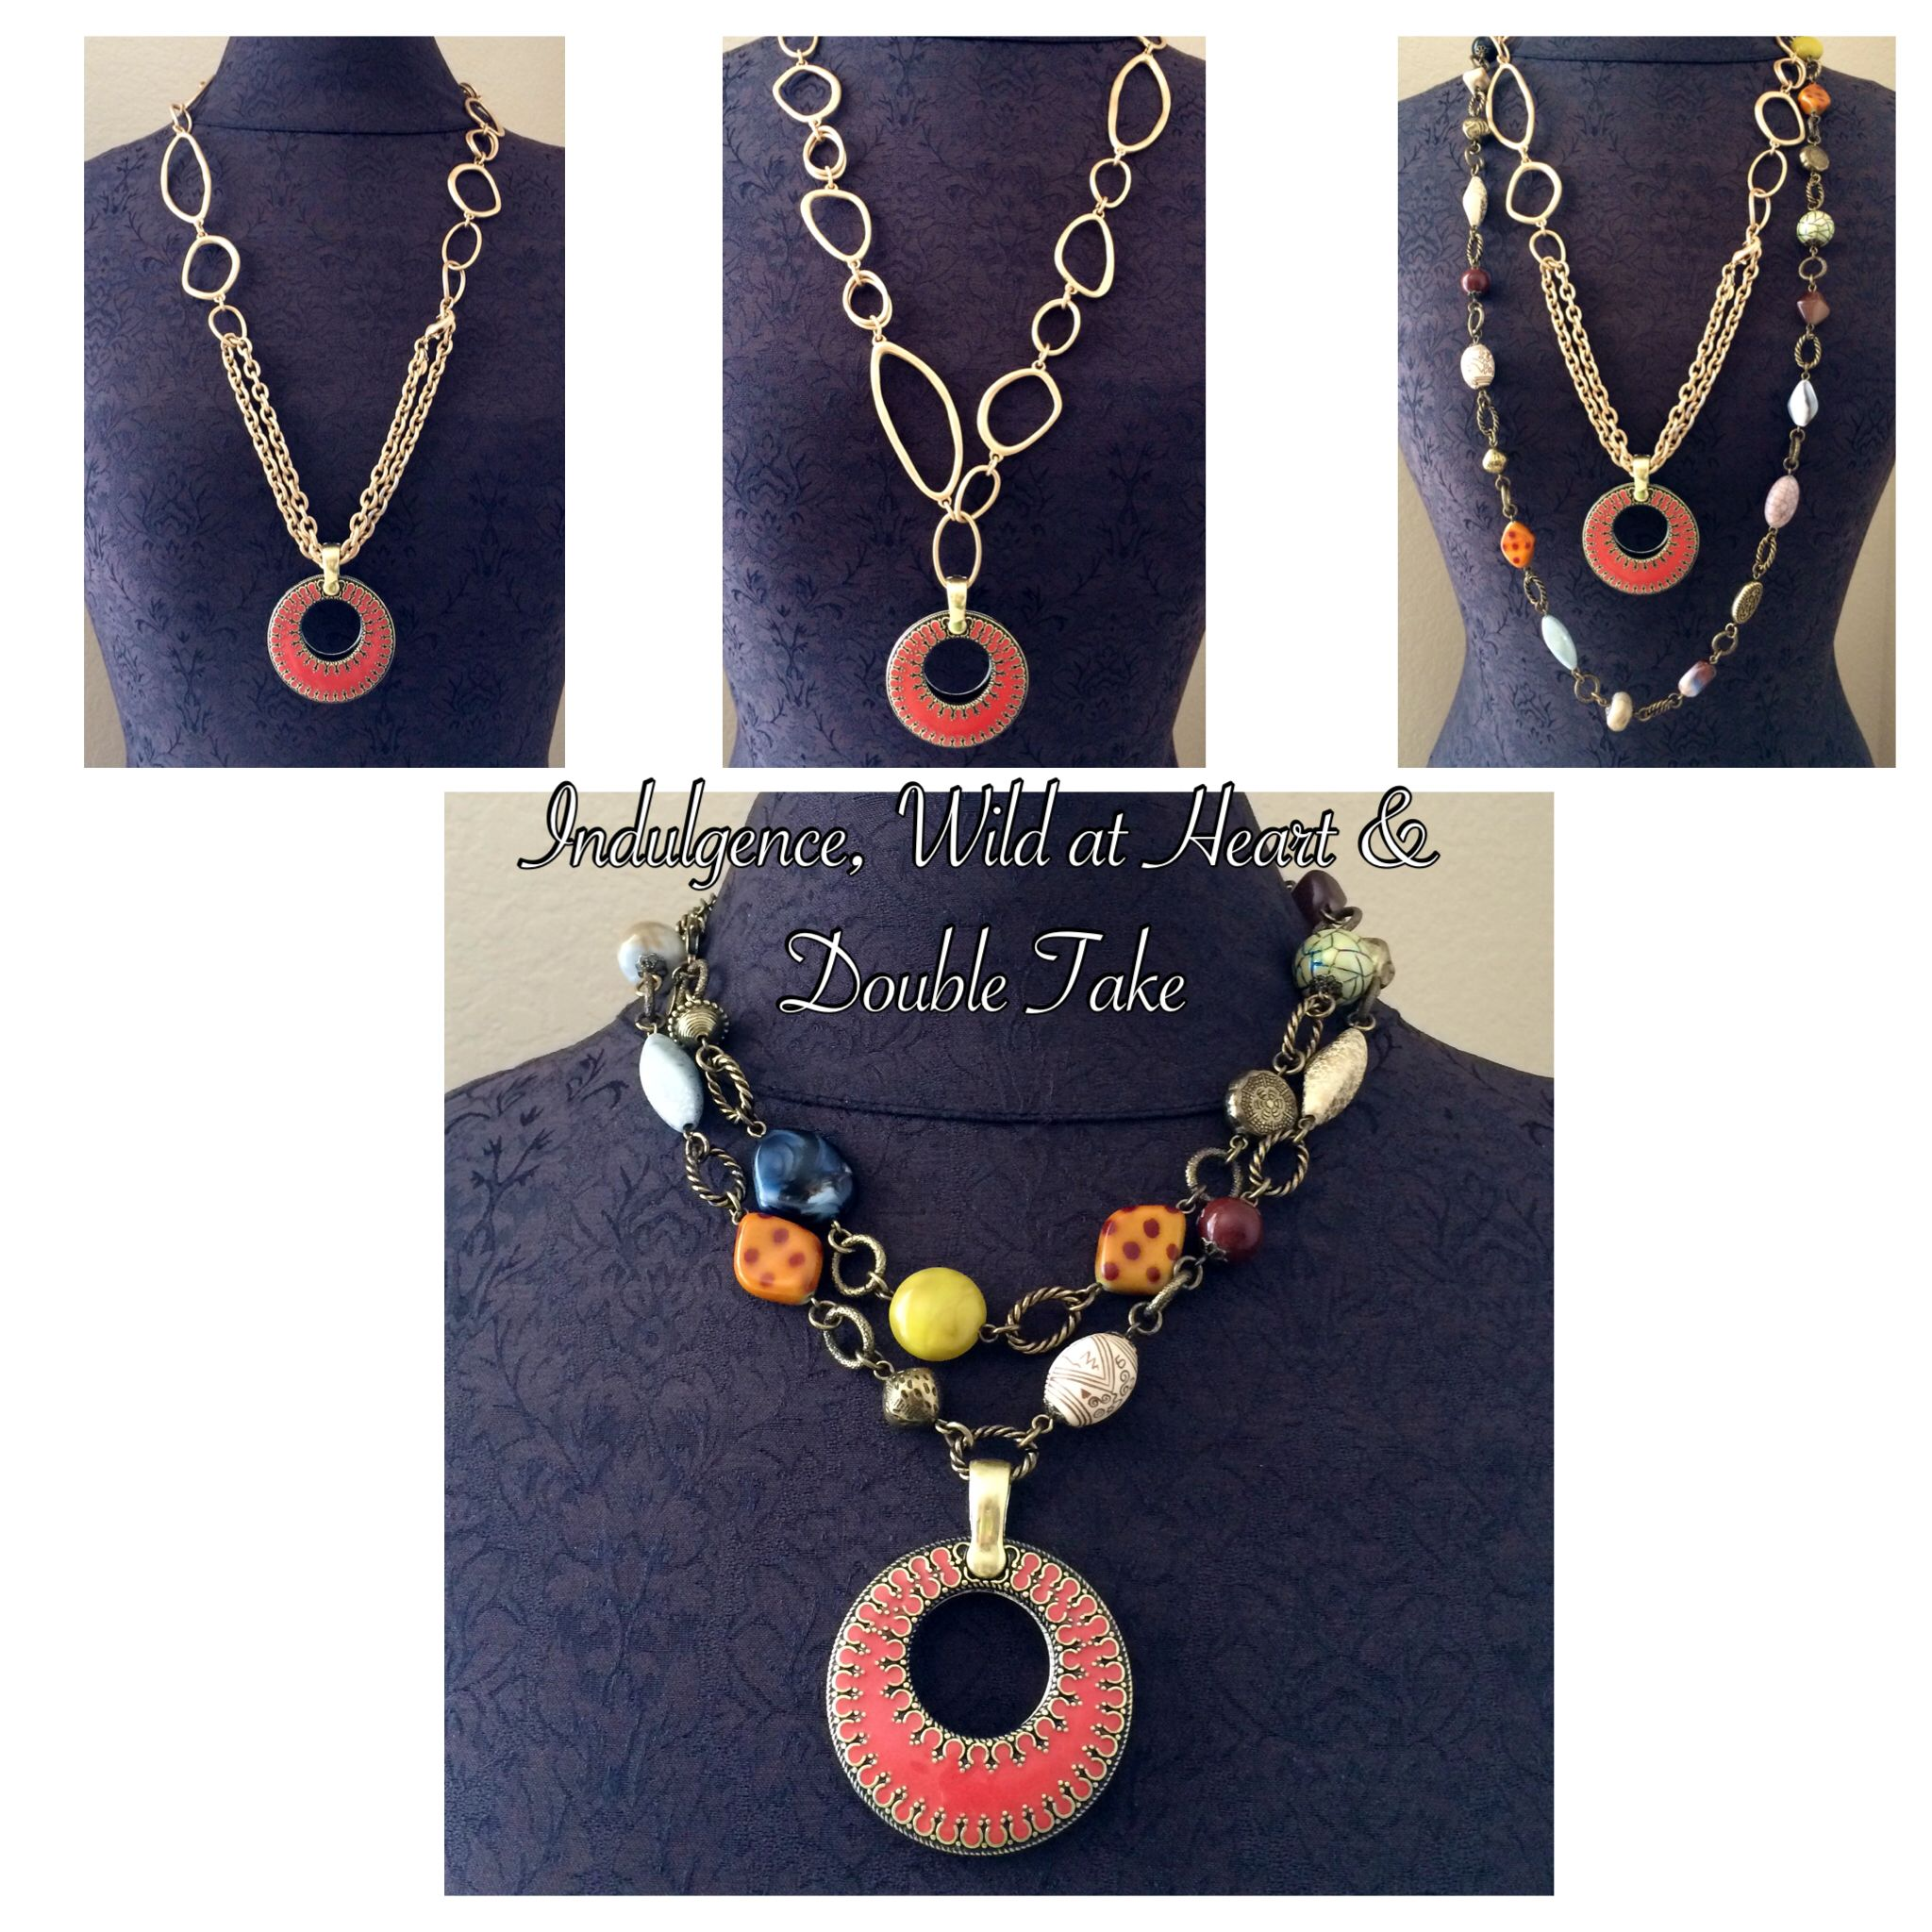 Premier Designs Wild & Heart & Indulgence necklaces and ...